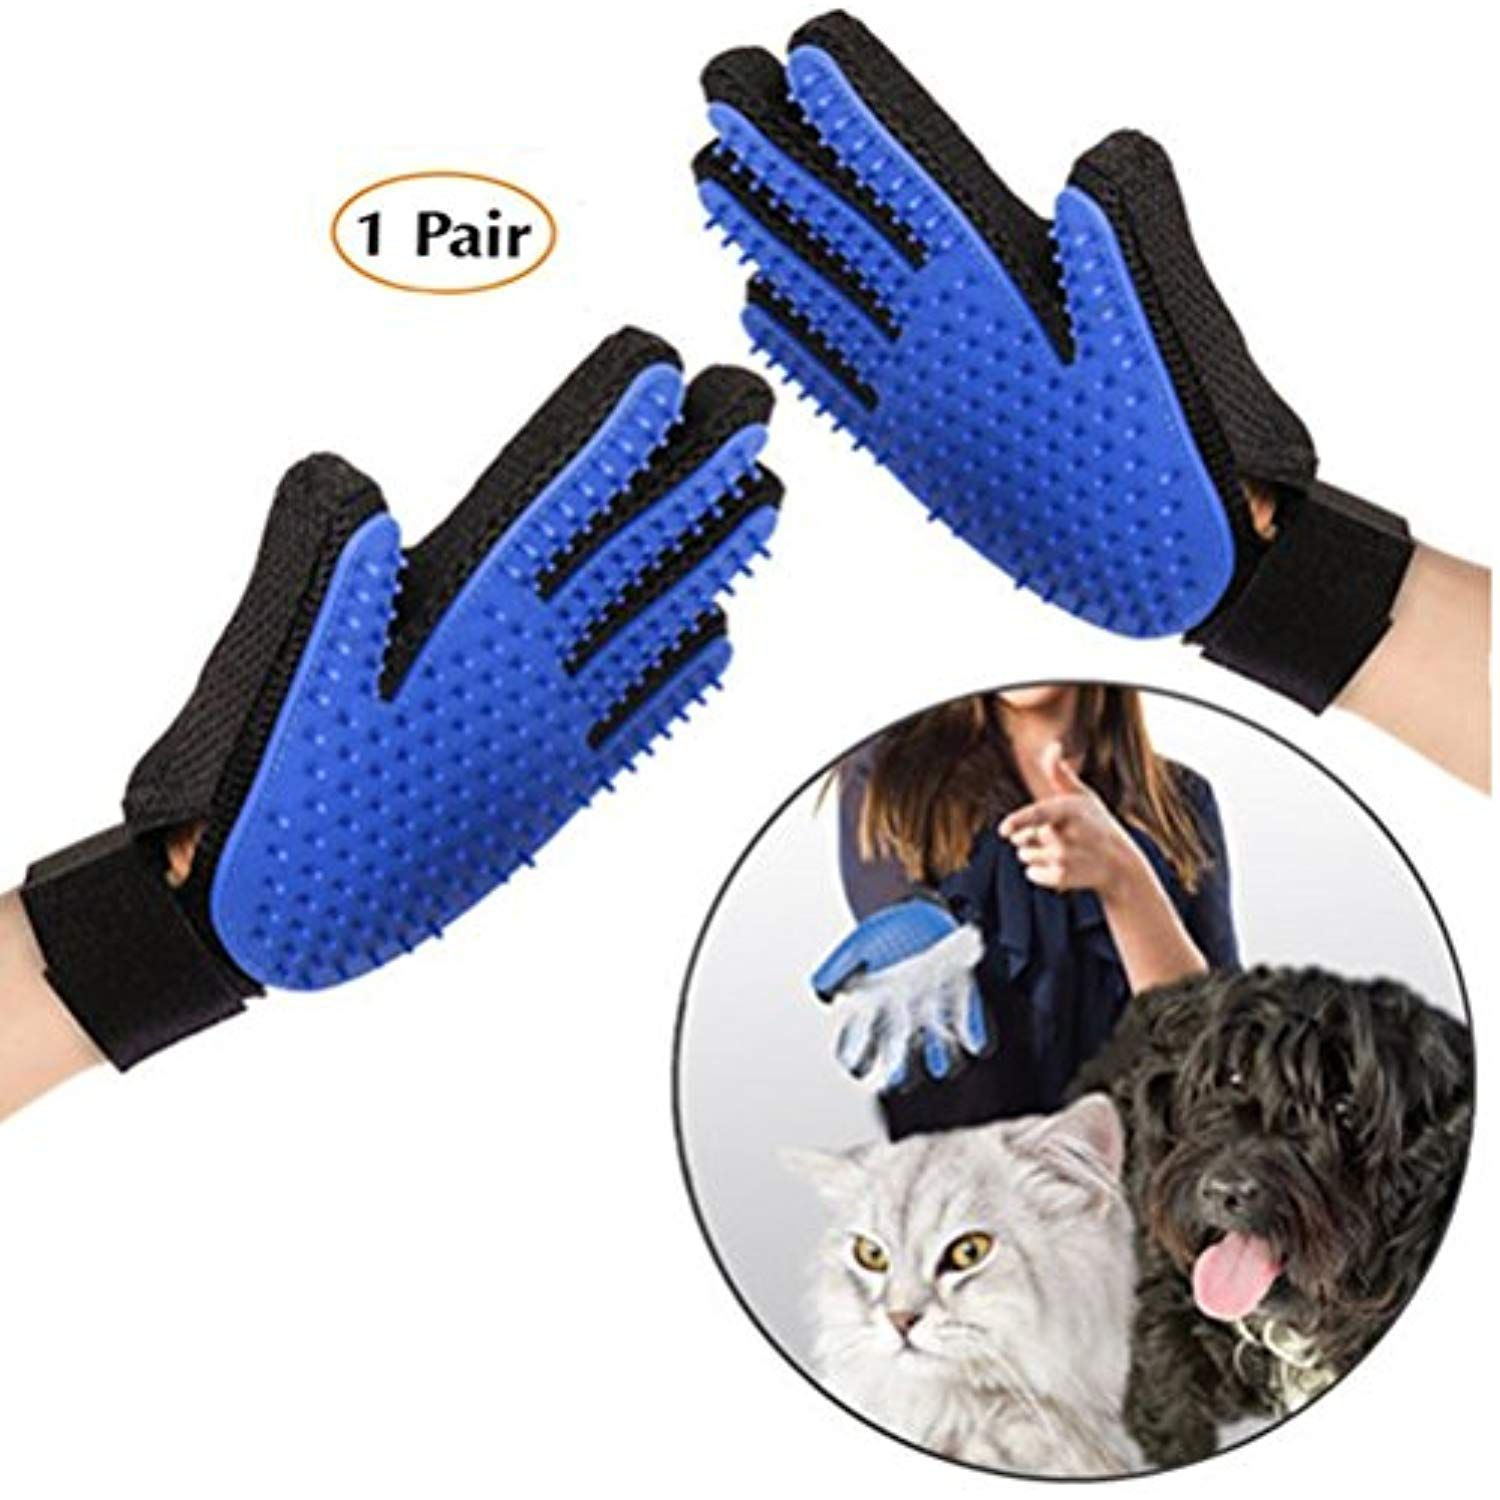 Honykids Pet Grooming Glove Efficient Pet Hair Remover Glove